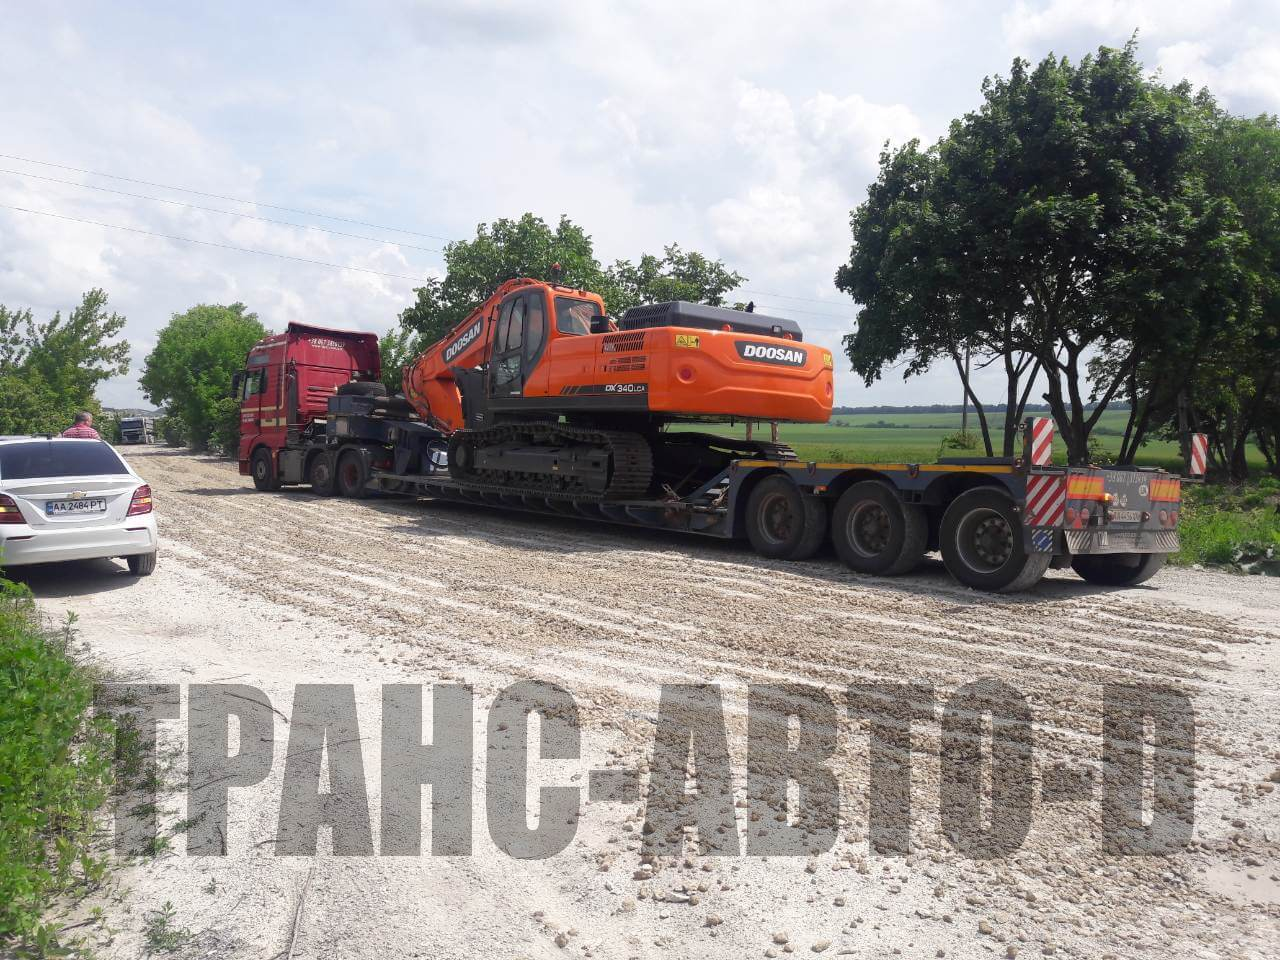 Transportation of the Doosan excavator from Europe to Ukraine - 2